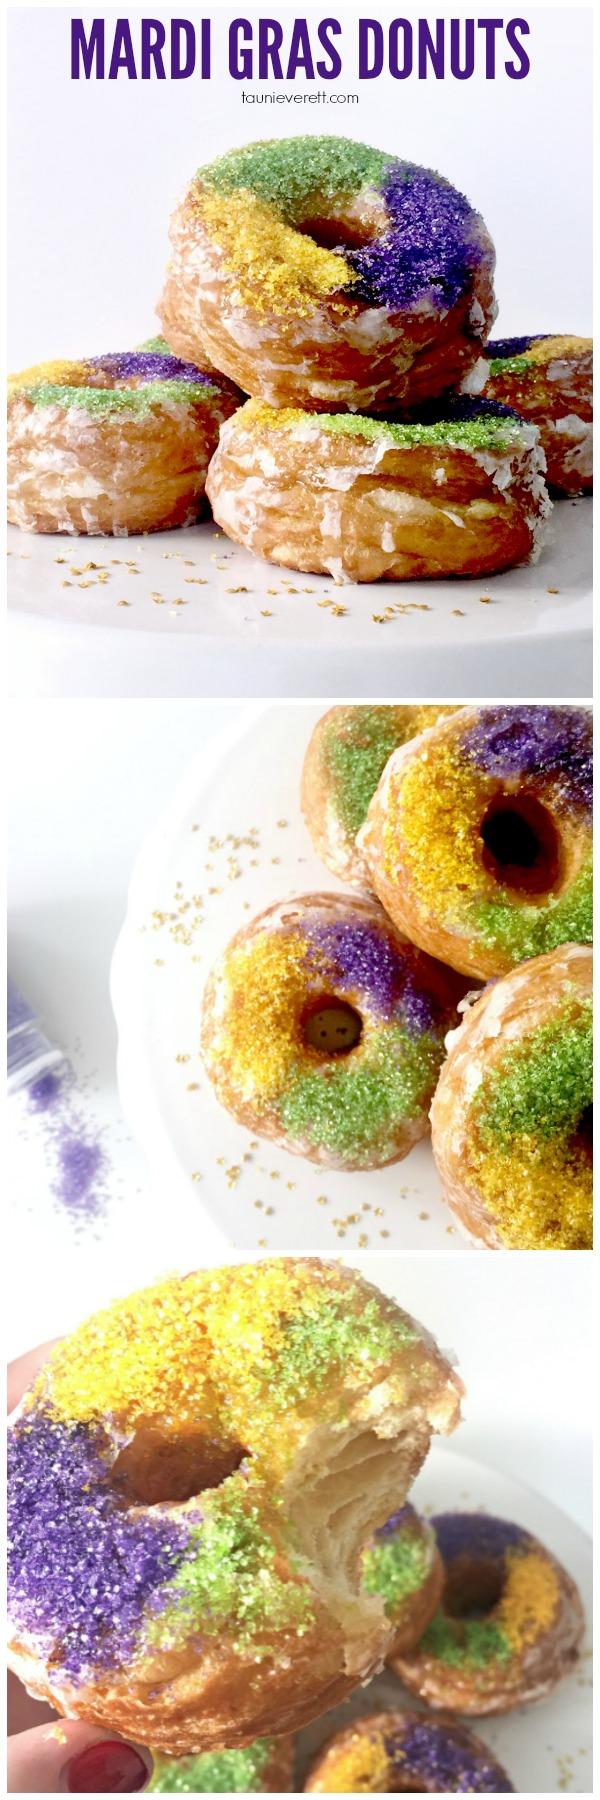 Celebrate Fat Tuesday with King Cake style Mardi Gras Donuts